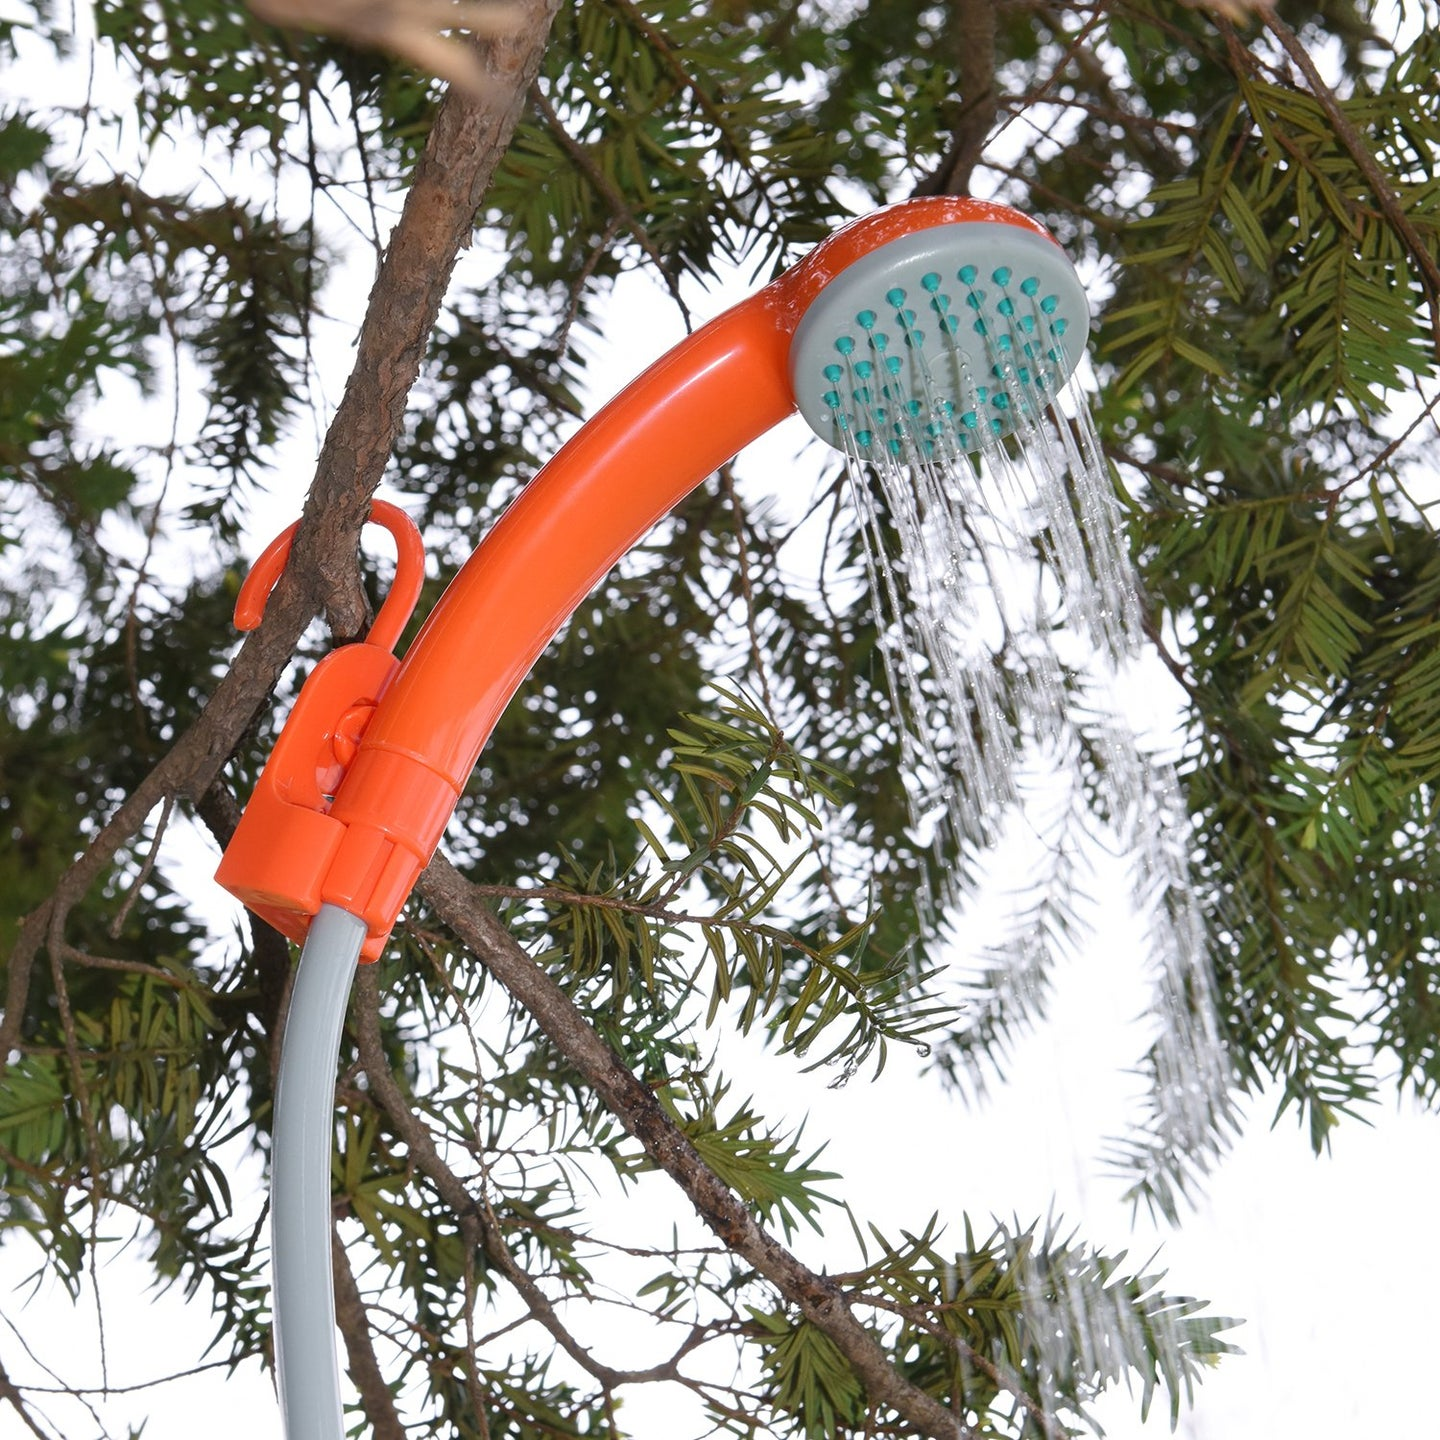 Portable camp showers